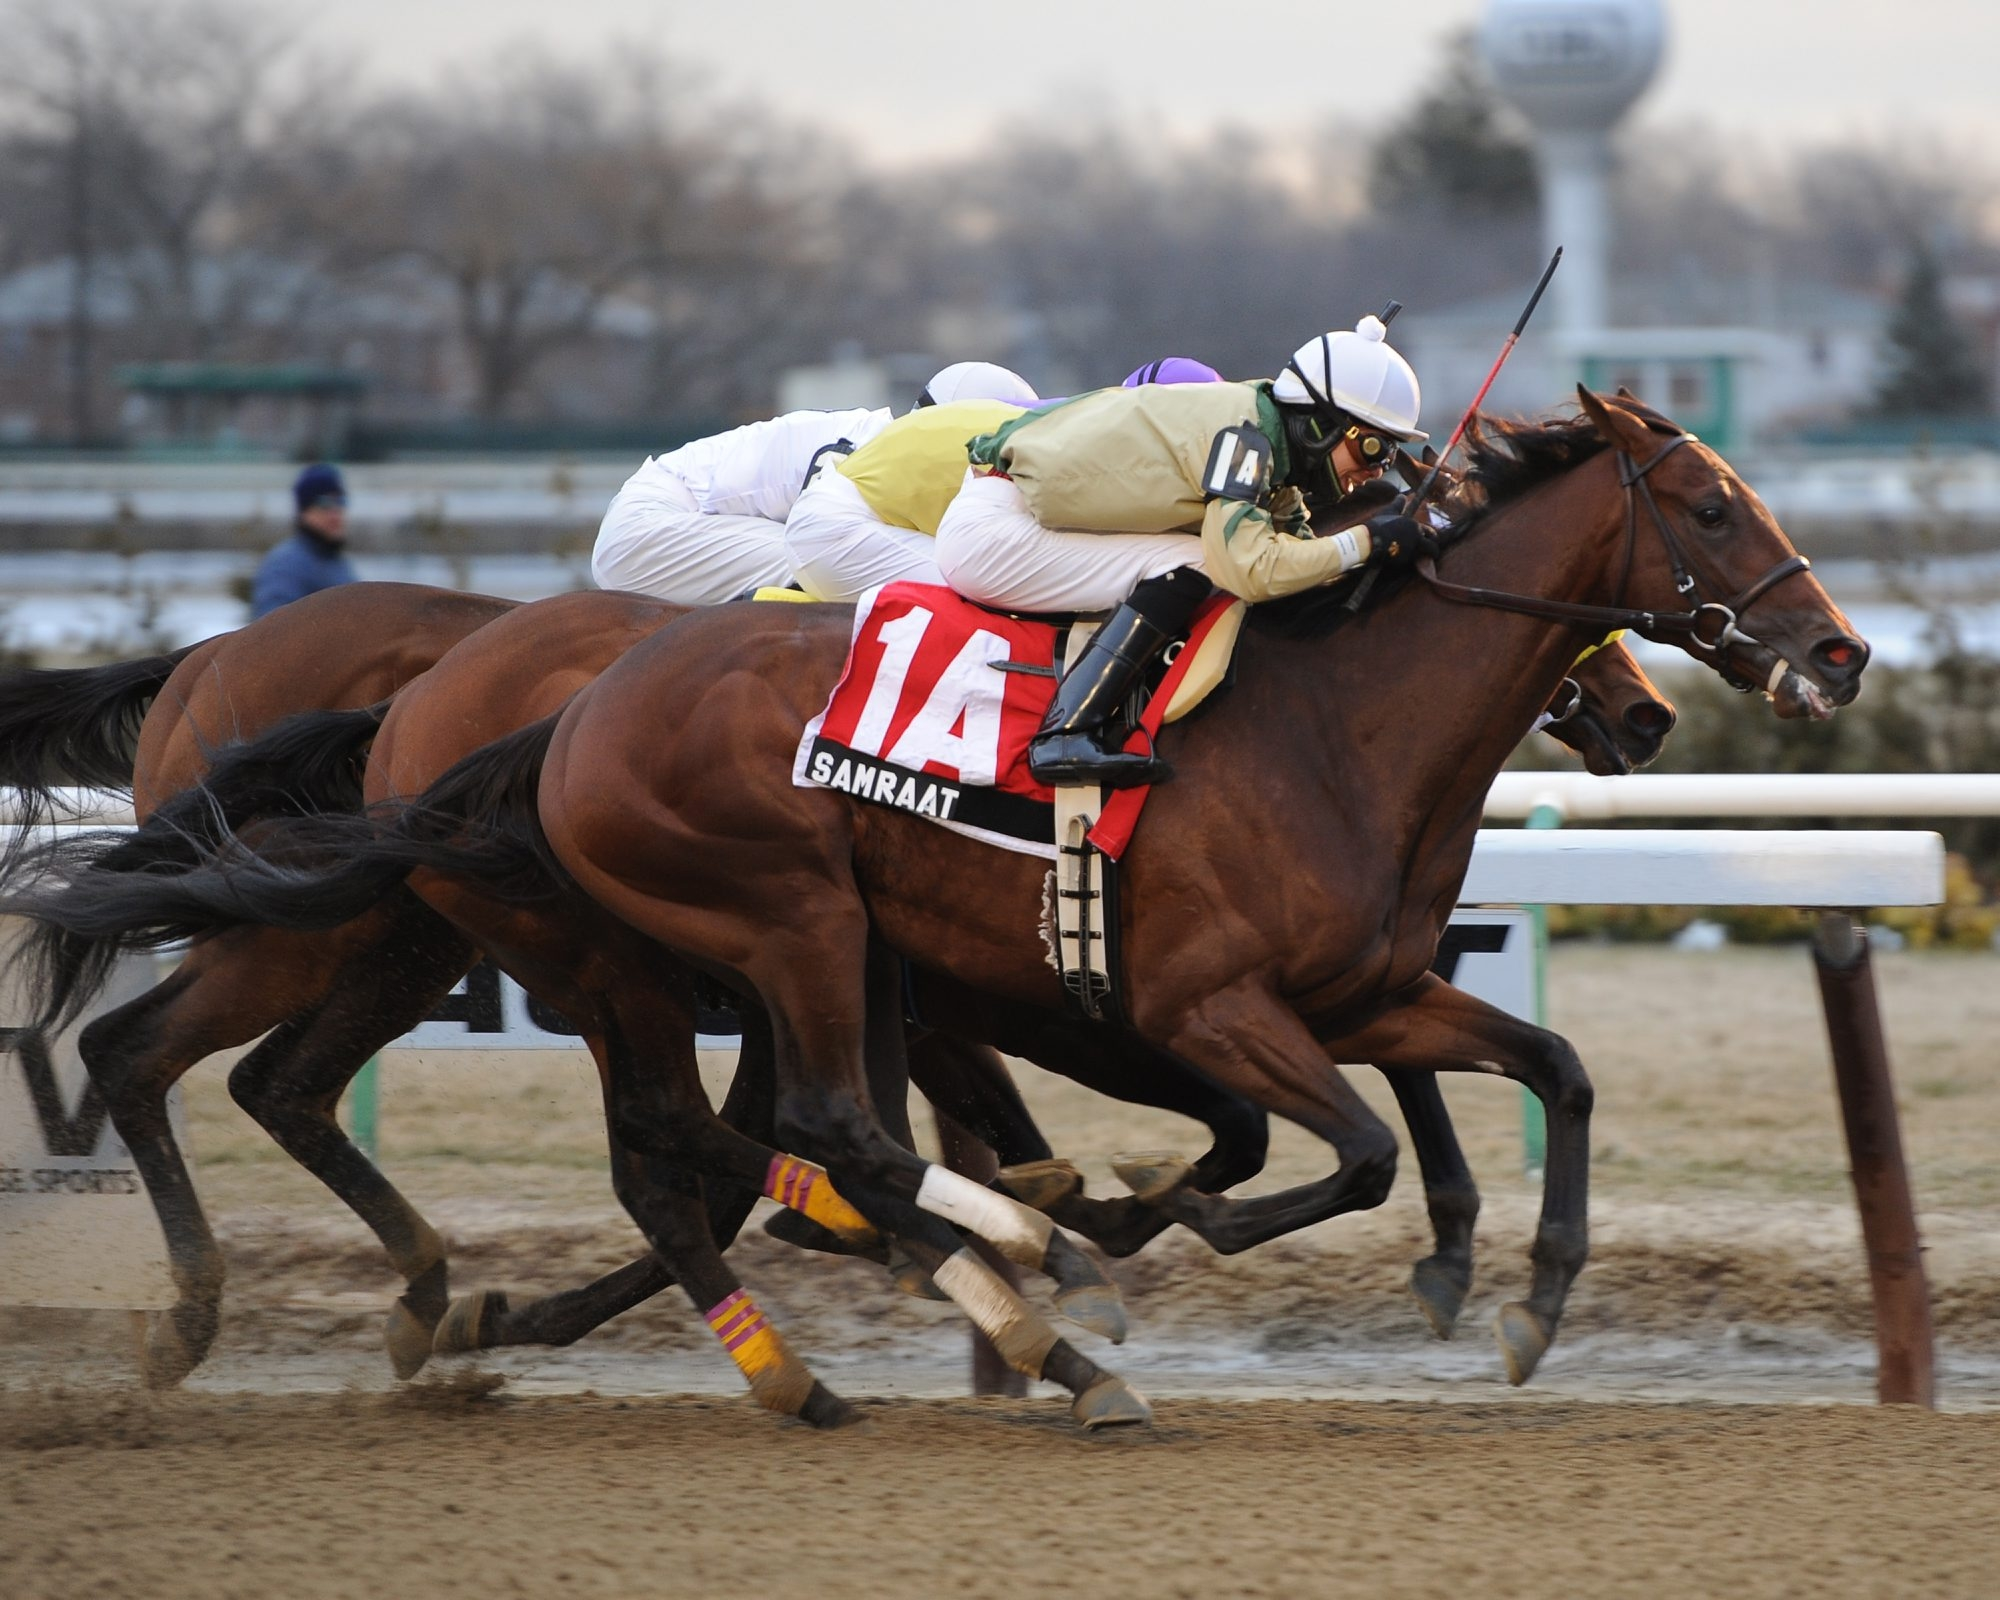 A win in today's Wood Memorial Stakes at Aqueduct would help propel Samraat toward contending in the Kentucky Derby on May 3.